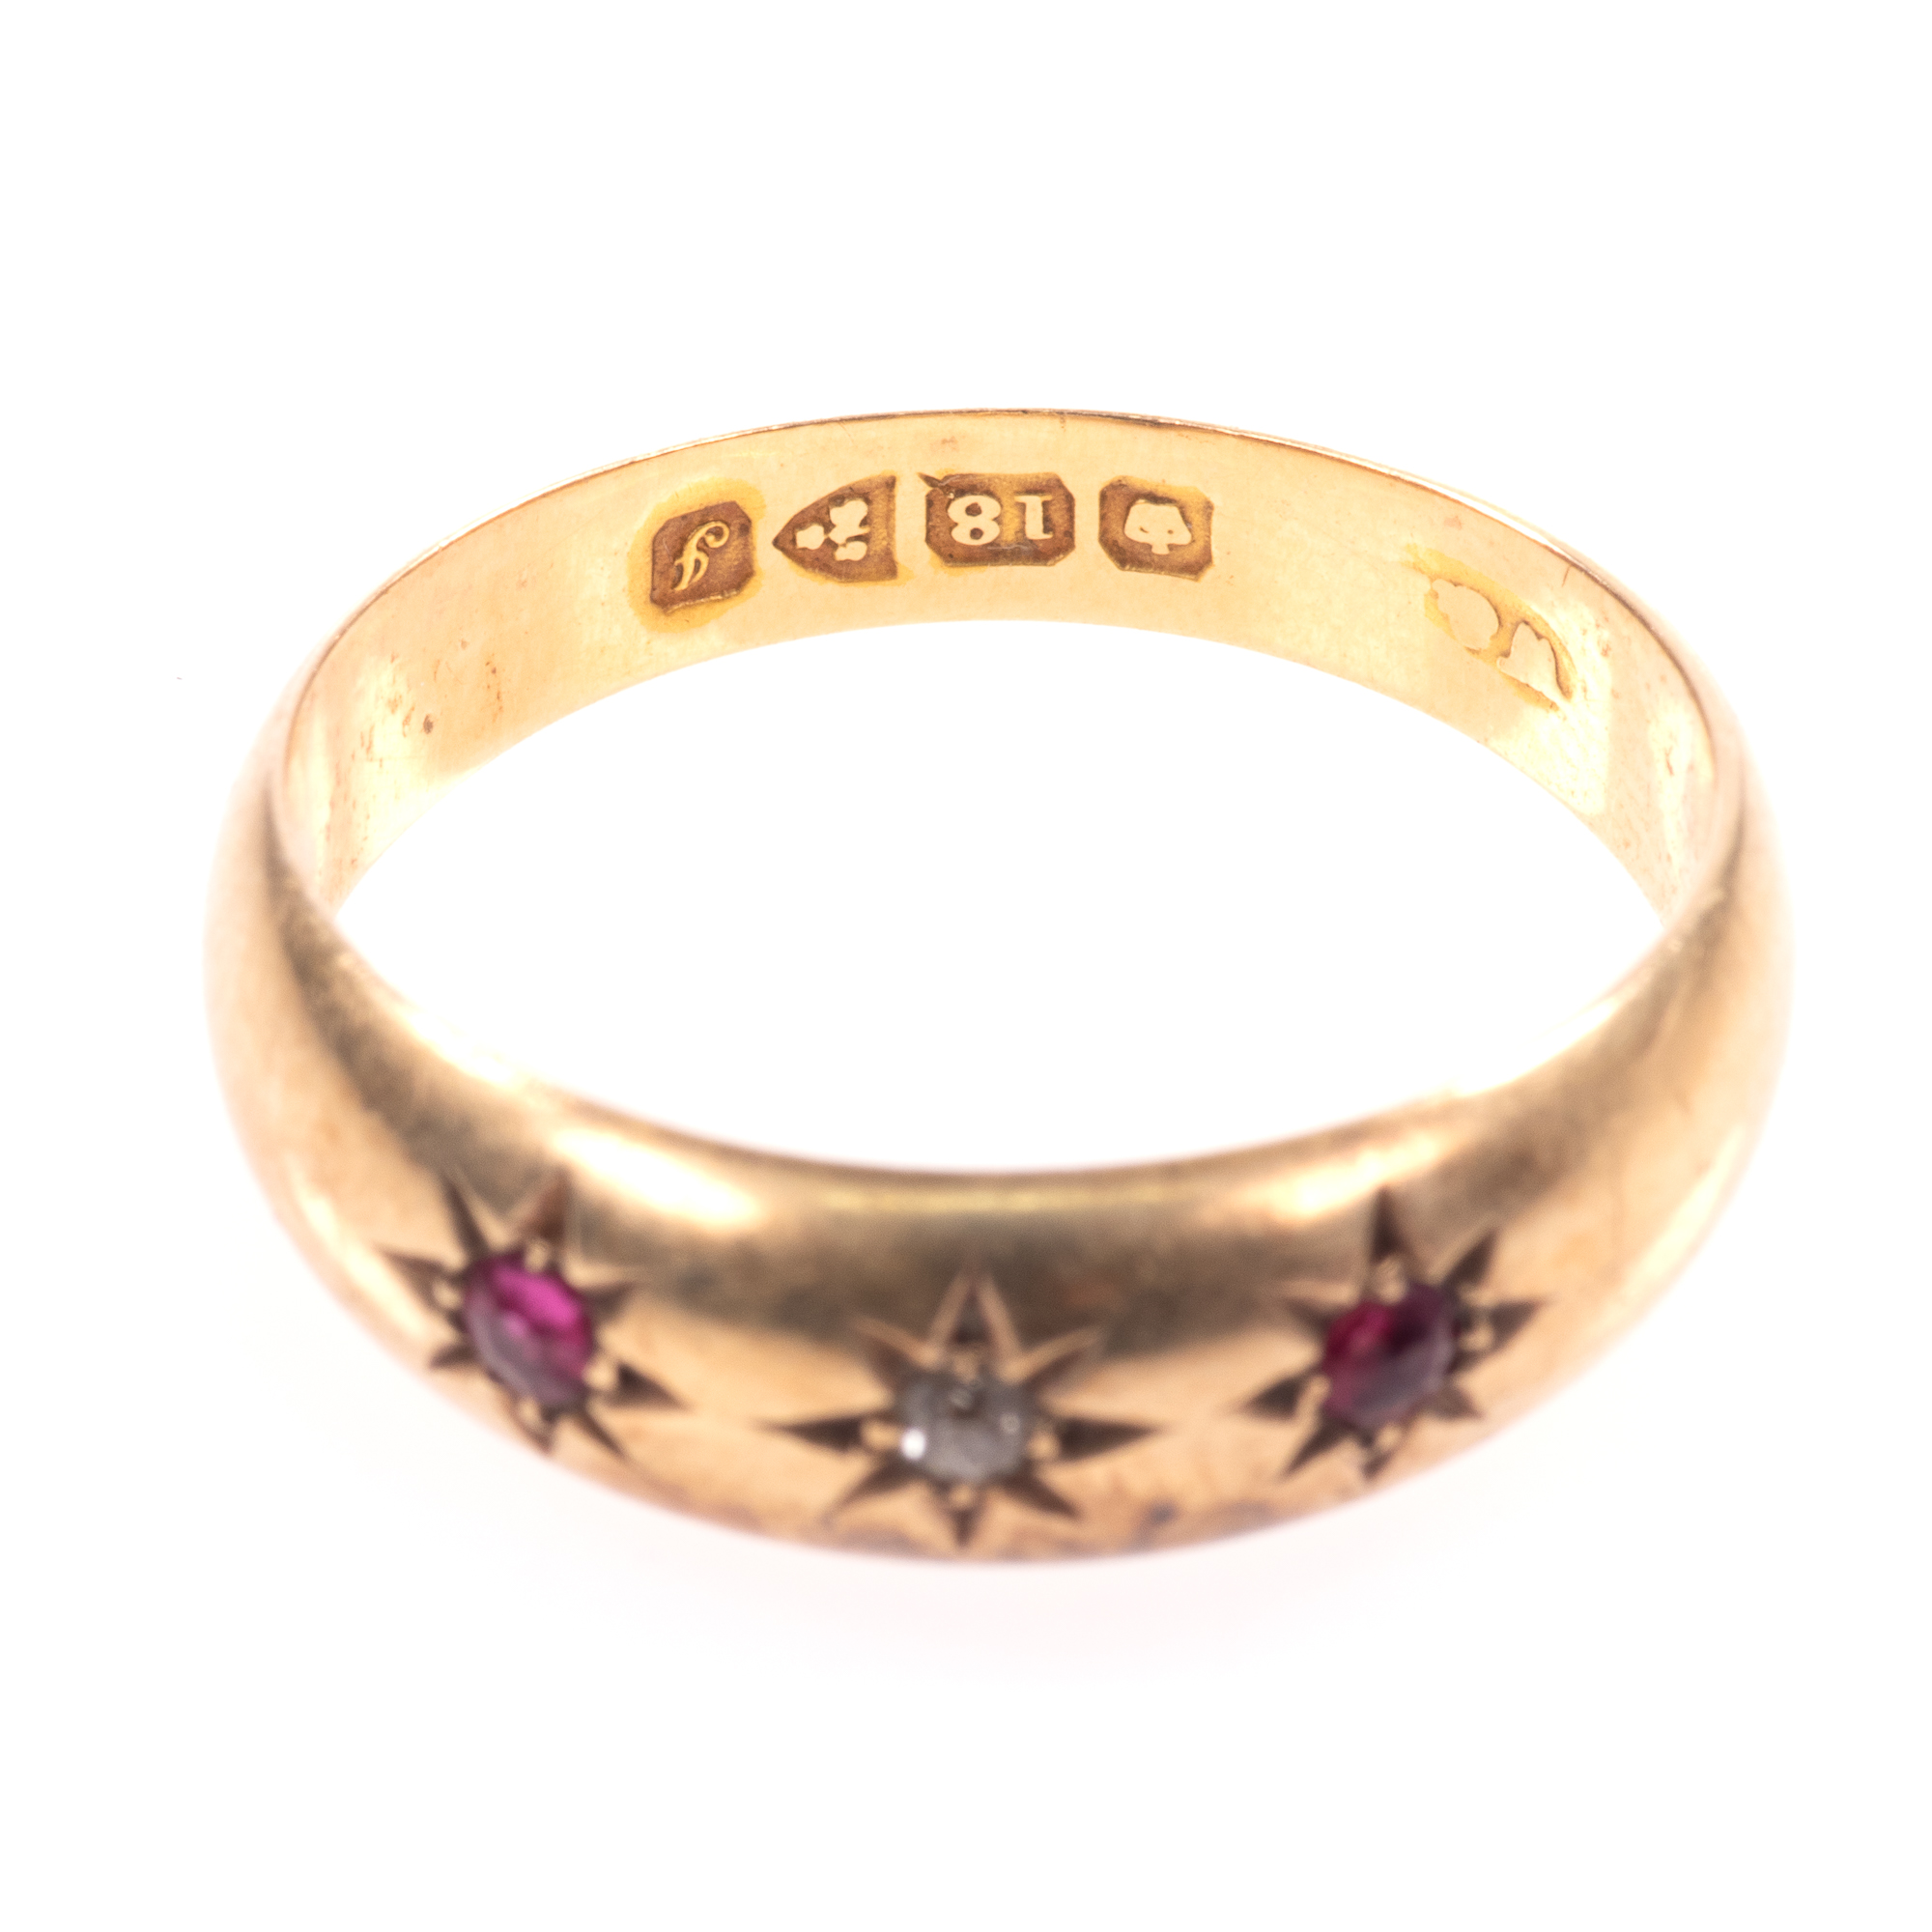 18ct Gold Edwardian Ruby & Diamond Ring Chester 1909 - Image 4 of 8